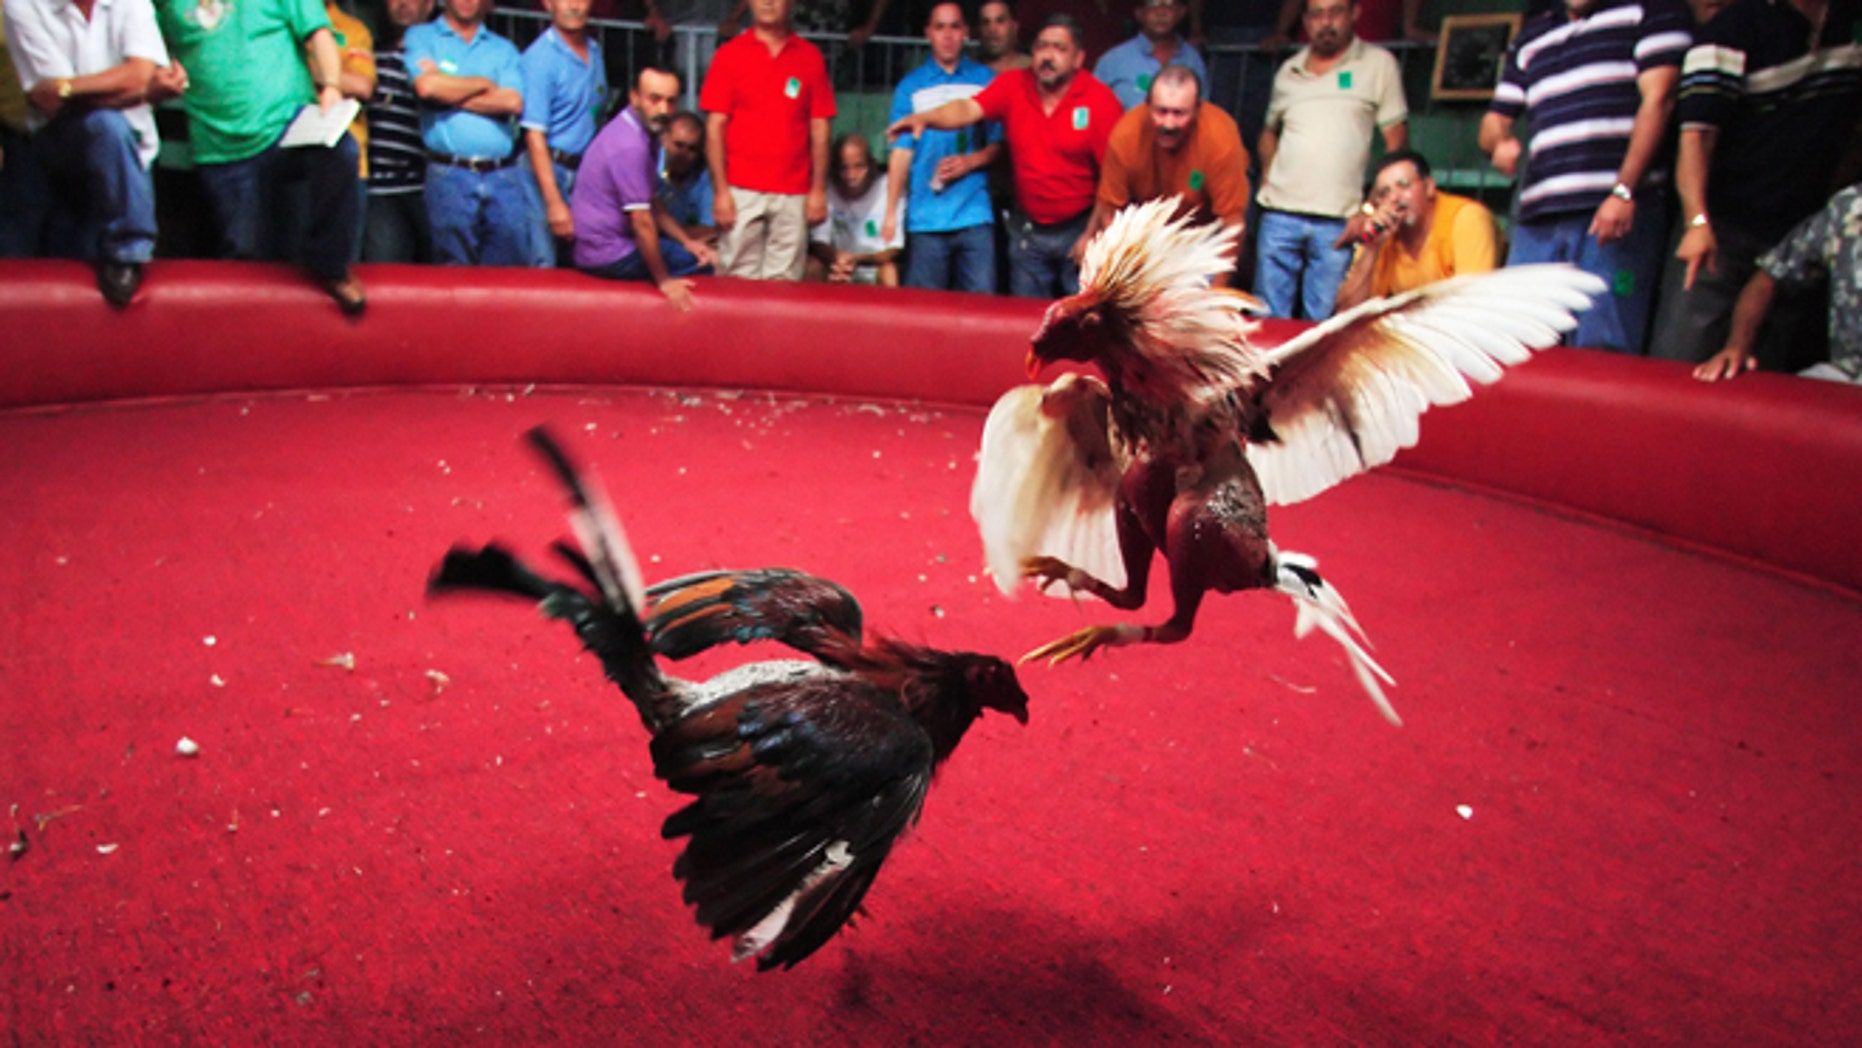 "BARRANQUITAS, PUERTO RICO - NOVEMBER 11, 2006: Spectators cheer on the Fighting Roosters  on opening night of the Cockfighting season at the Coliseo Central De Barranquitas on November 11, 2006 in Barranquitas, Puerto Rico.  Heavy betting between the fans are made before and during the fights.  Most of the time multiple bets are made by one person of up to several thousand dollars. all bets are paid off in cash at the end of each fight.  Cockfighting, or ""peleas de gallos,"" is a legal sport in Puerto Rico, unlike in the United States where some states have made it a felony.  (Photo by Al Bello/Getty Images)"